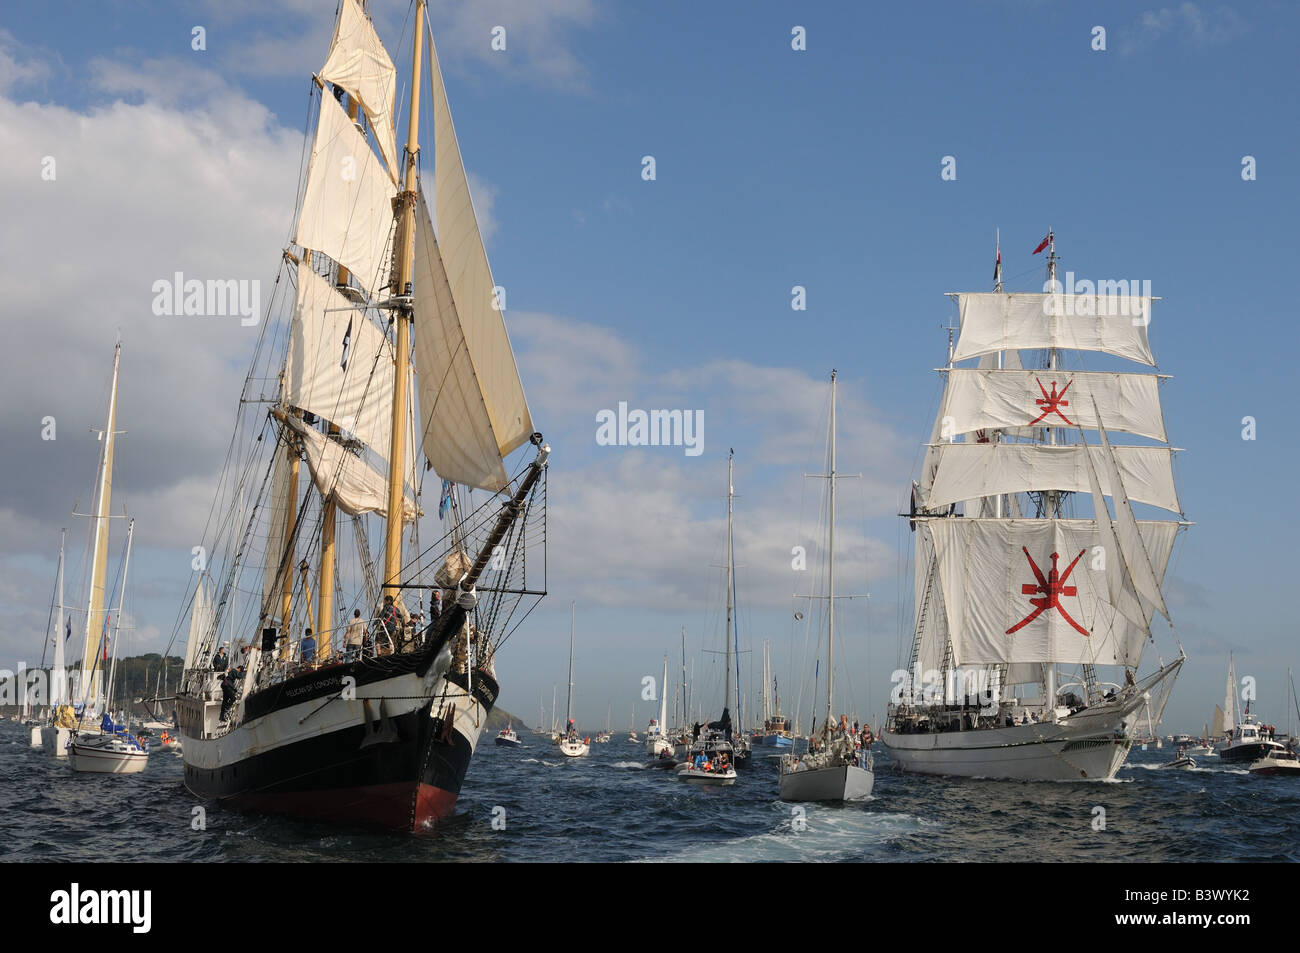 Shabab Oman a barquentine and the pelican of London at The start of the falmouth to portugal tall ships race - Stock Image